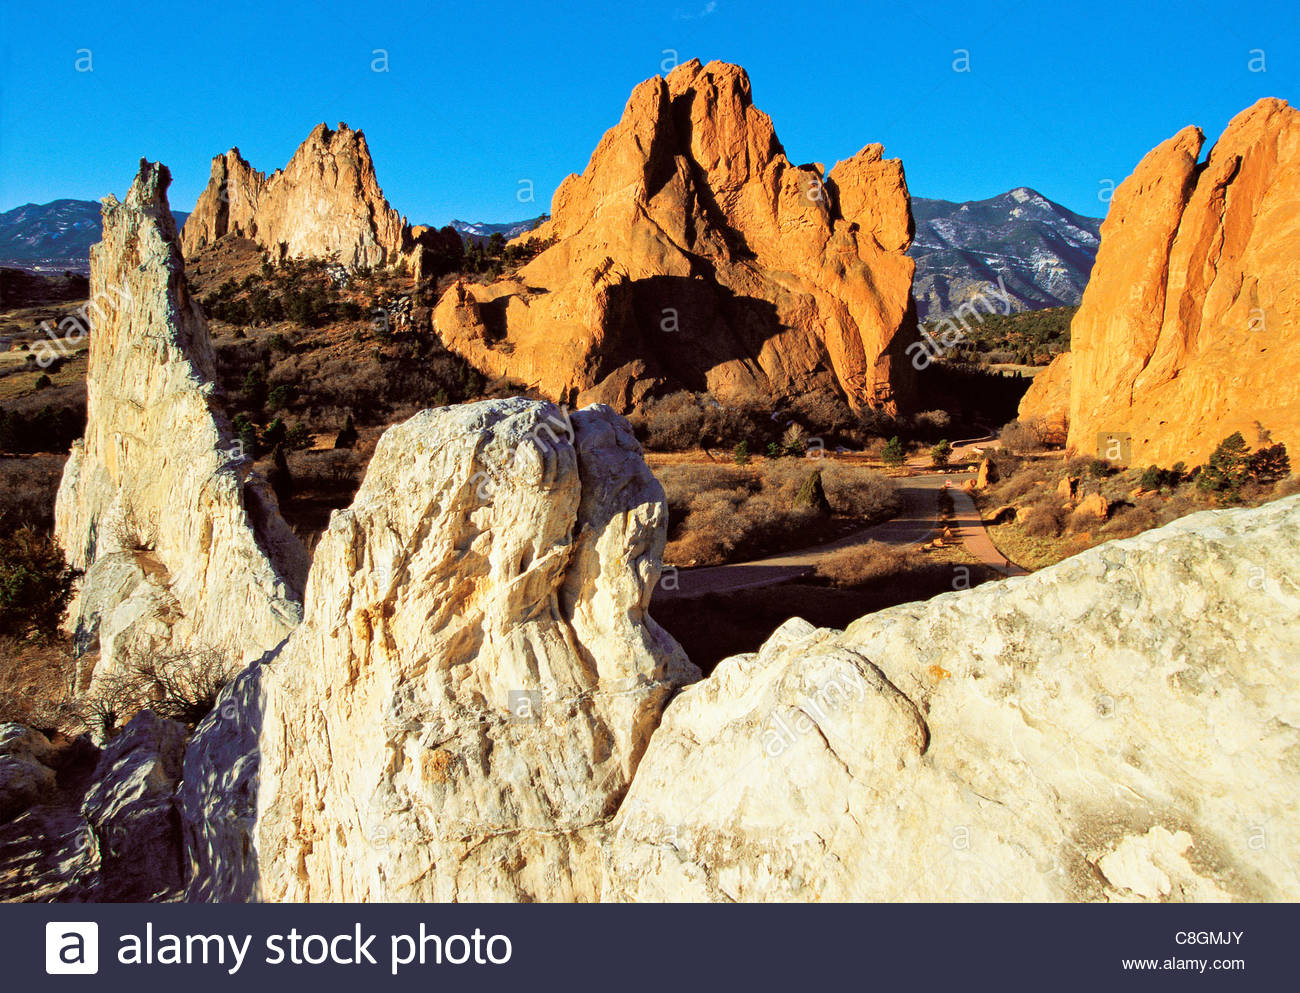 The Garden of the Gods Park on the front range of the Rocky Mountains. - Stock Image